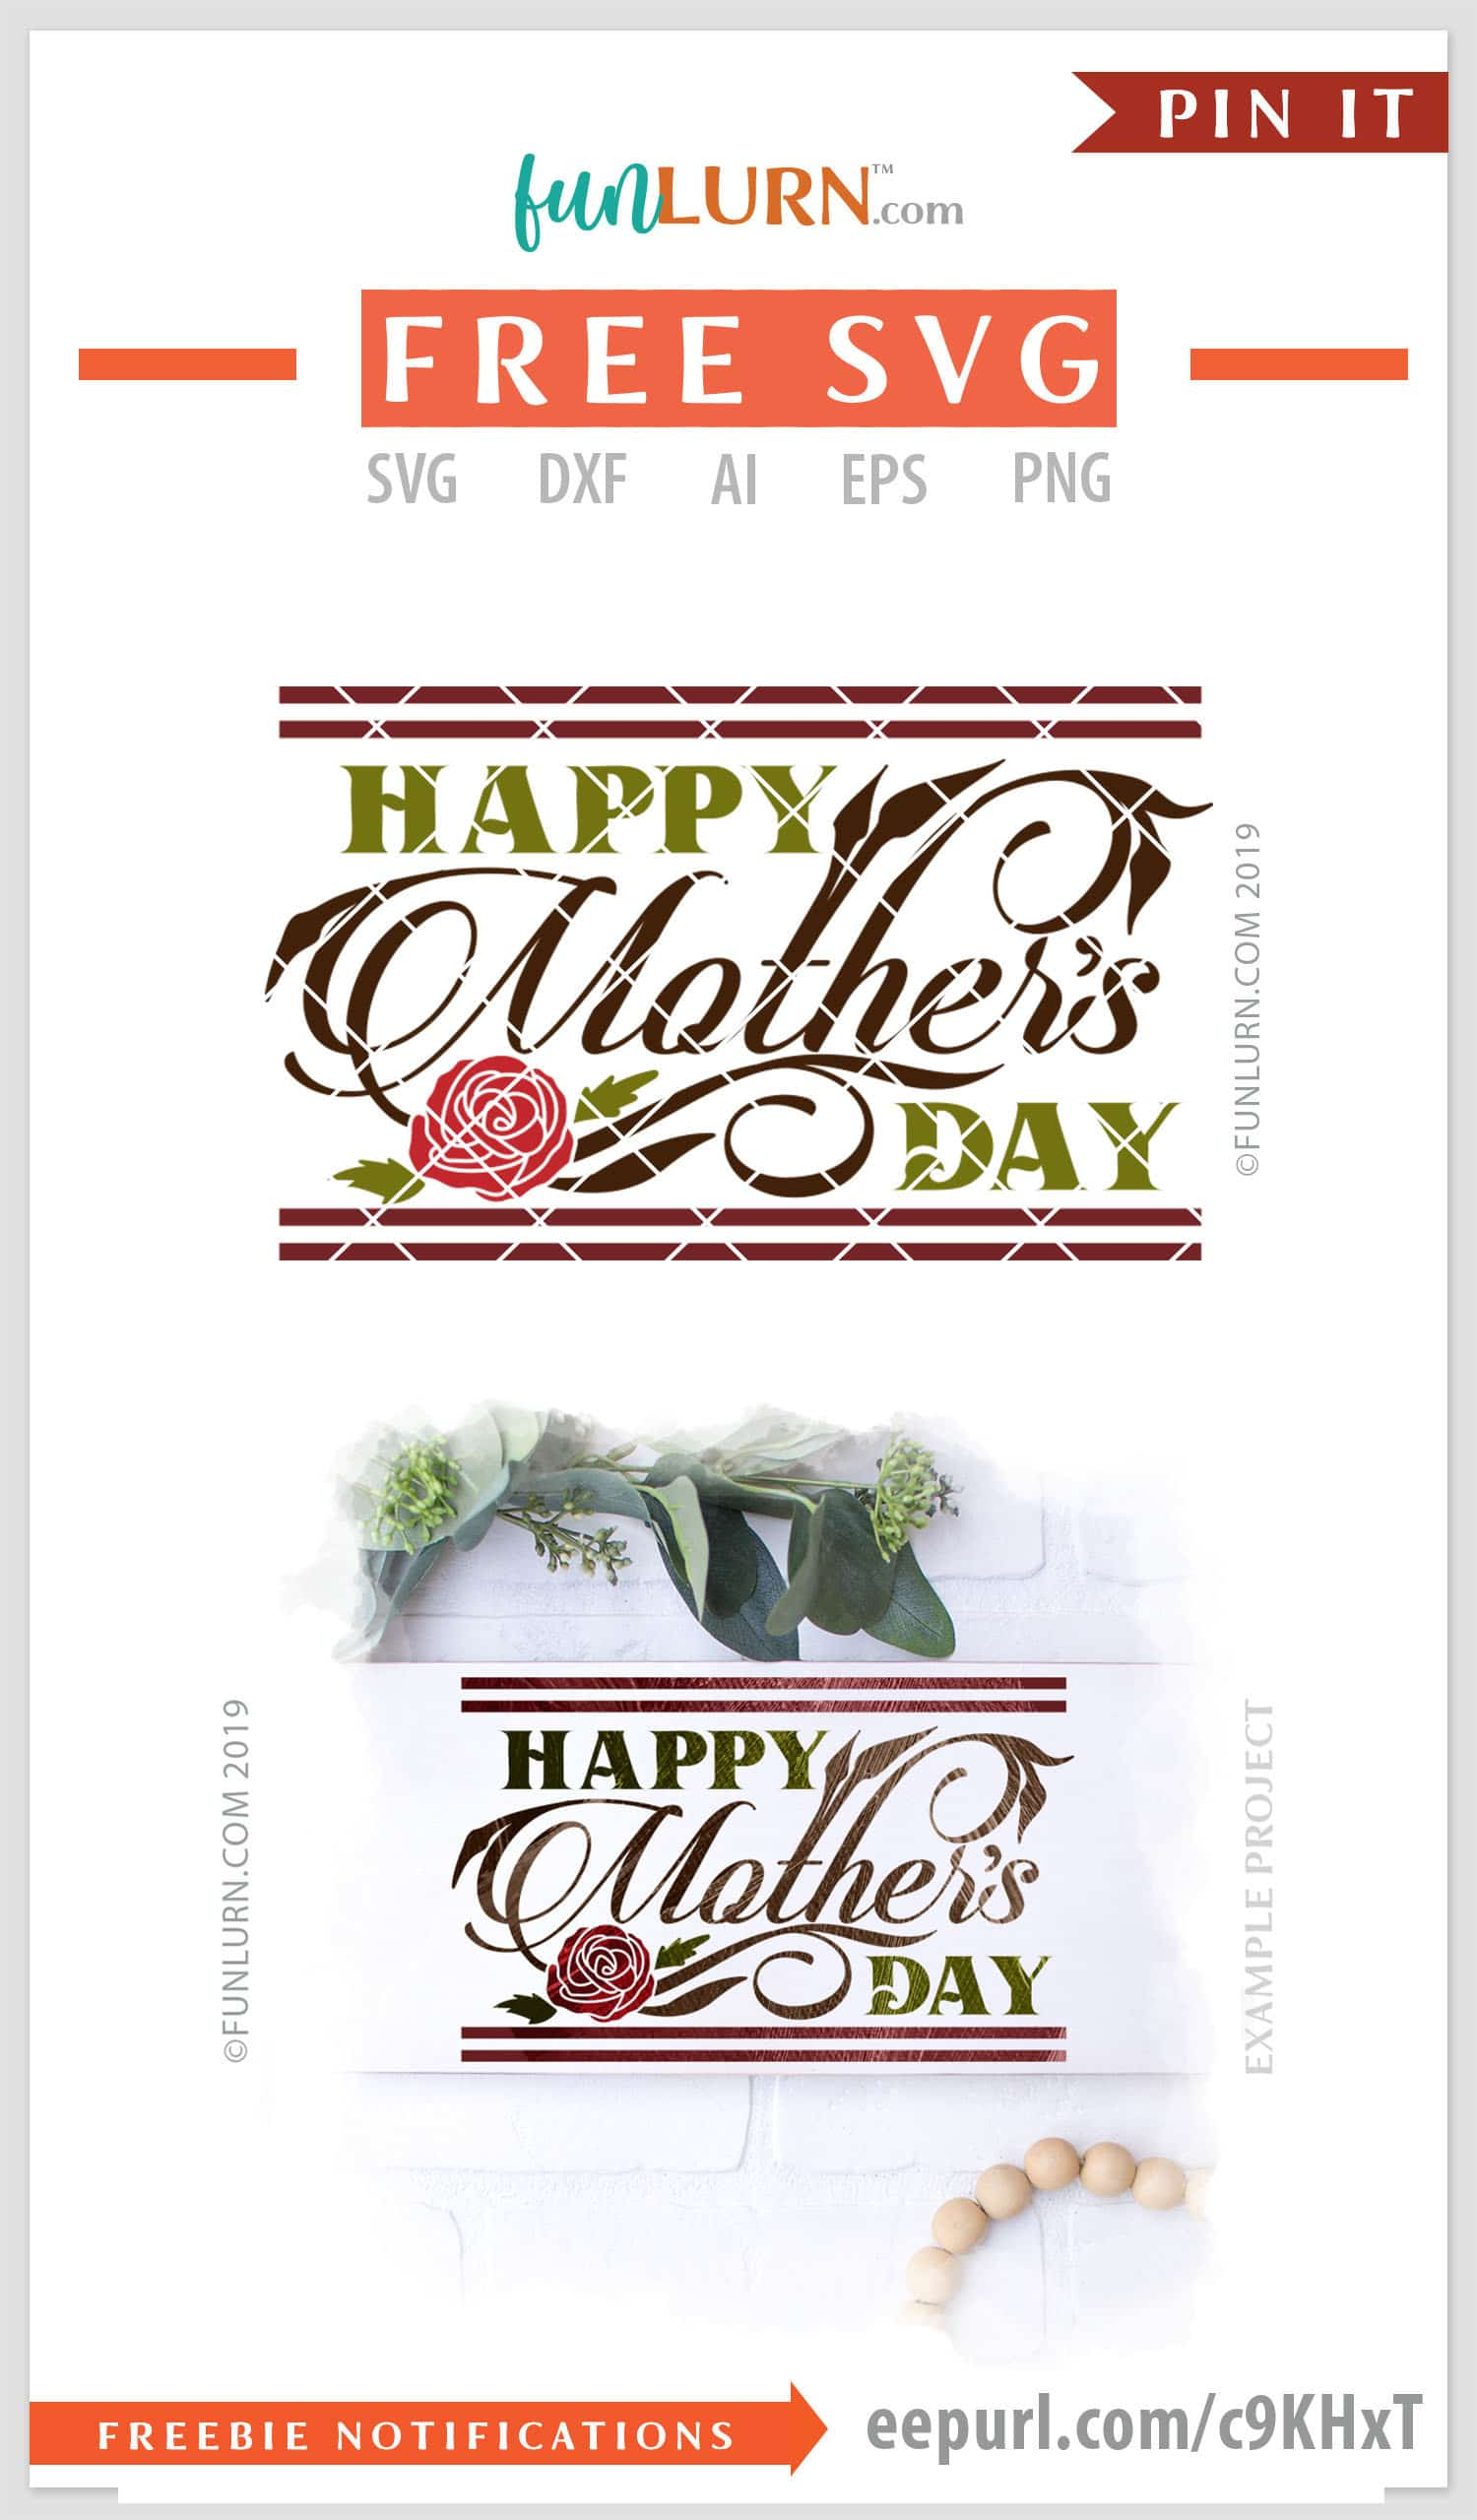 Free Purple mothers day warm hand painted svg flower art word. Happy Mother S Day Svg Funlurn SVG, PNG, EPS, DXF File